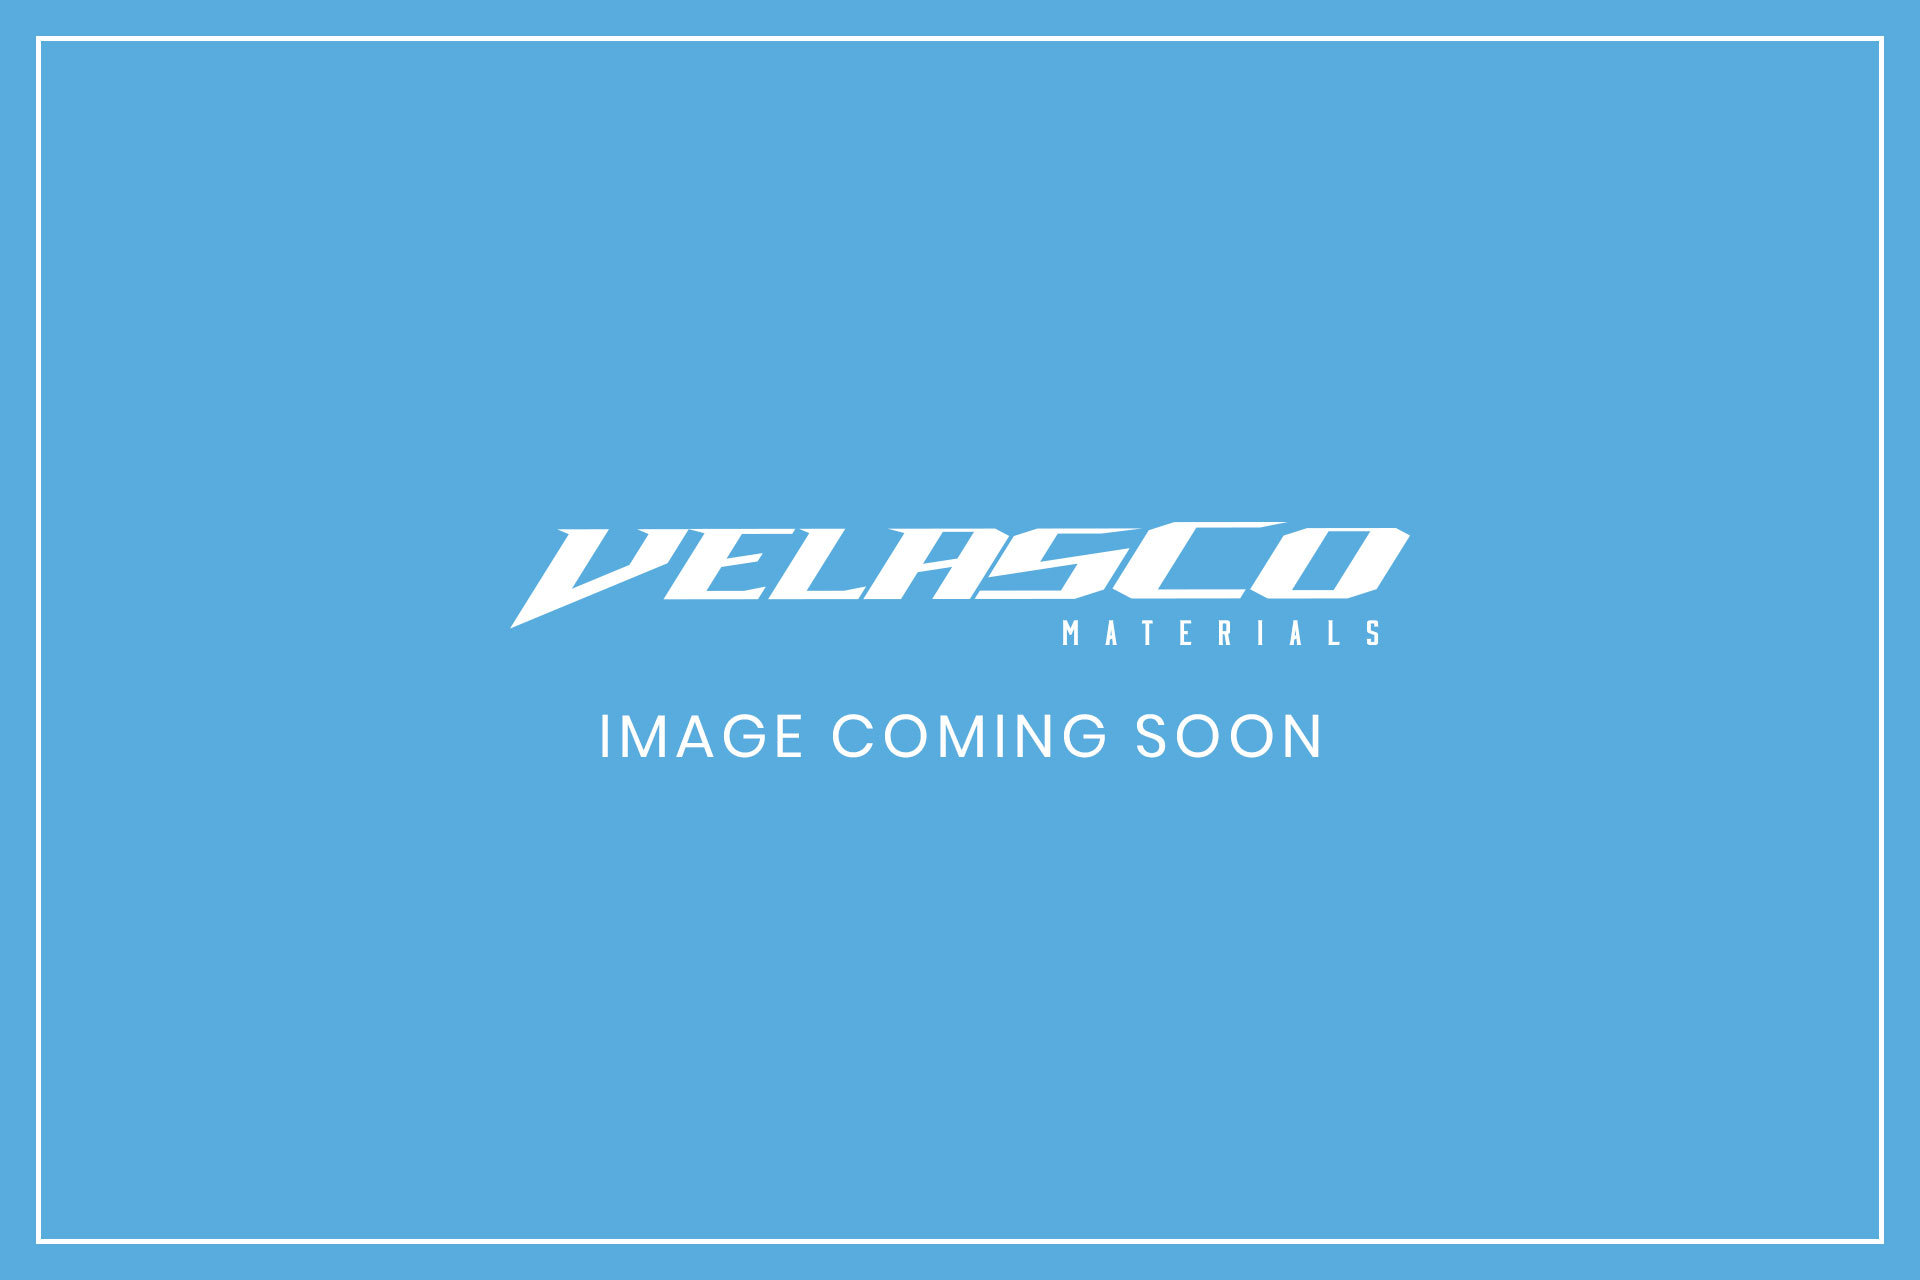 Velasco Materials: Image Coming Soon Placeholder